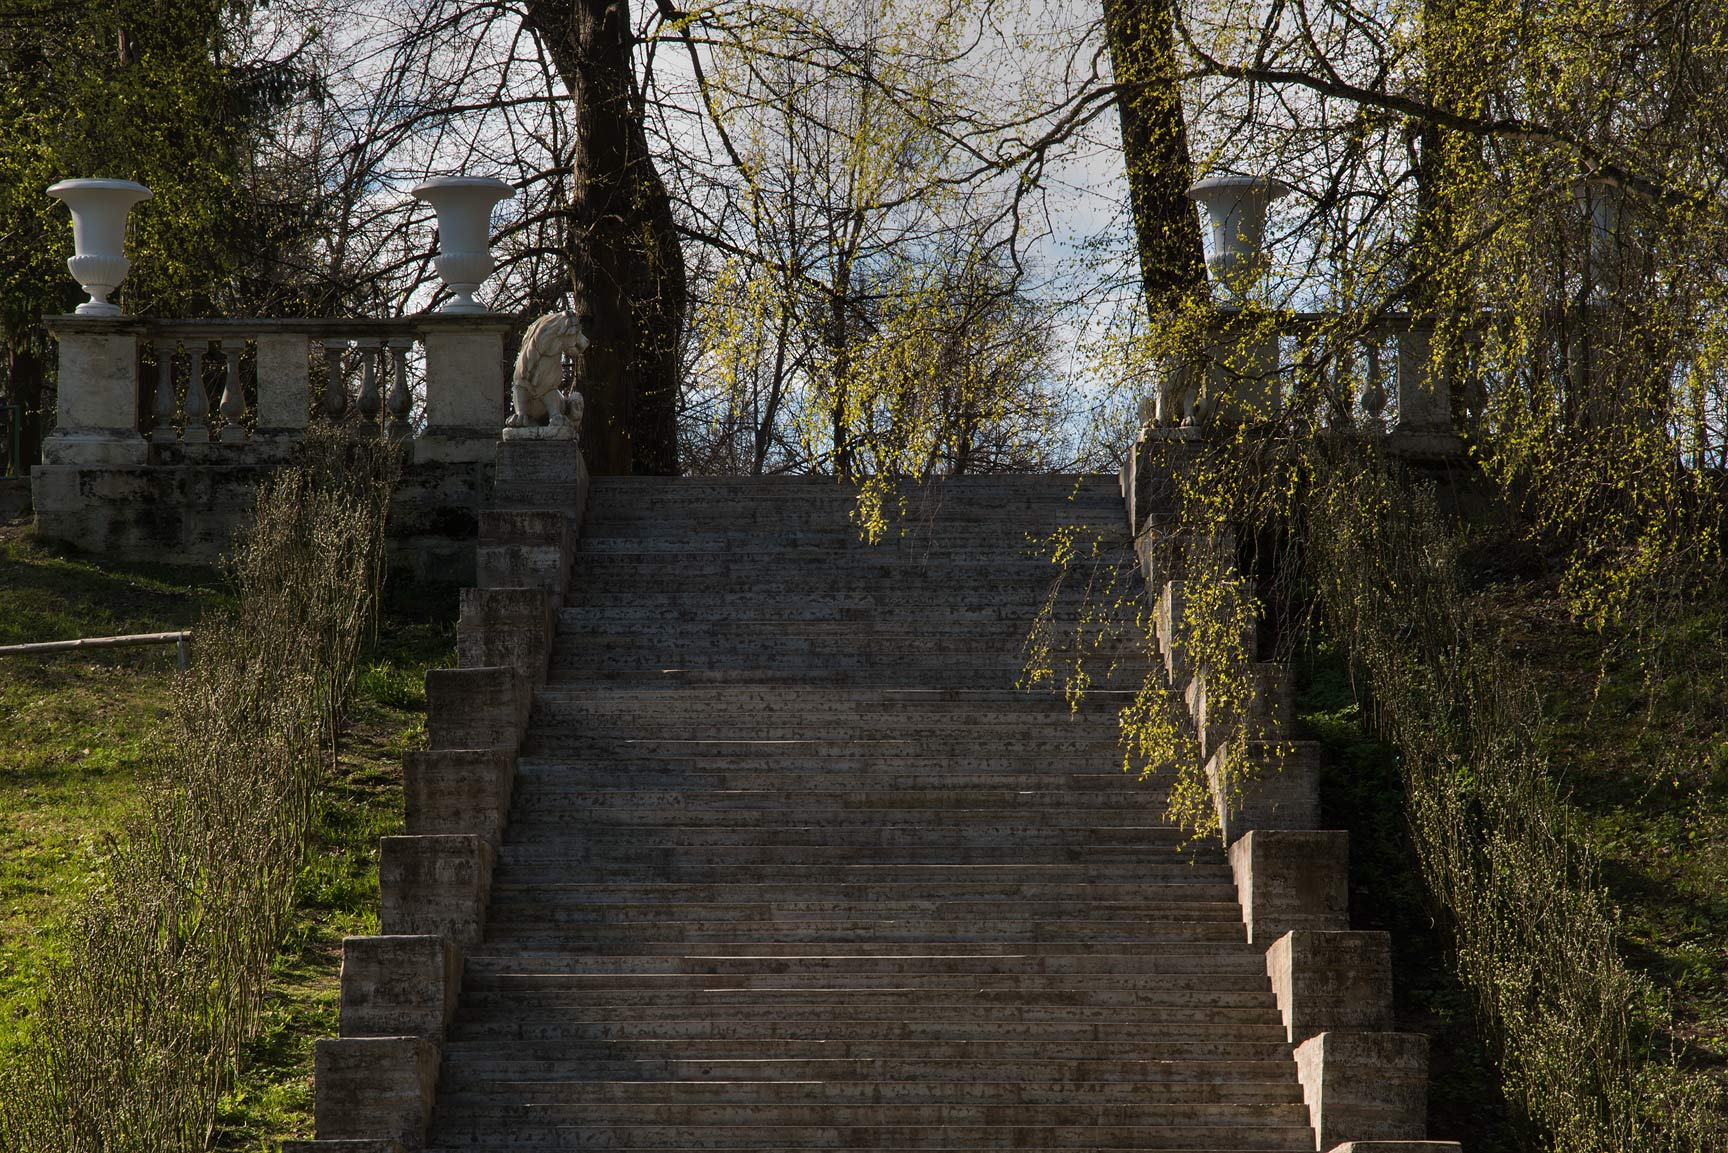 Grand Italian Stairs in Pavlovsk Park. Pavlovsk, suburb of St.Petersburg, Russia